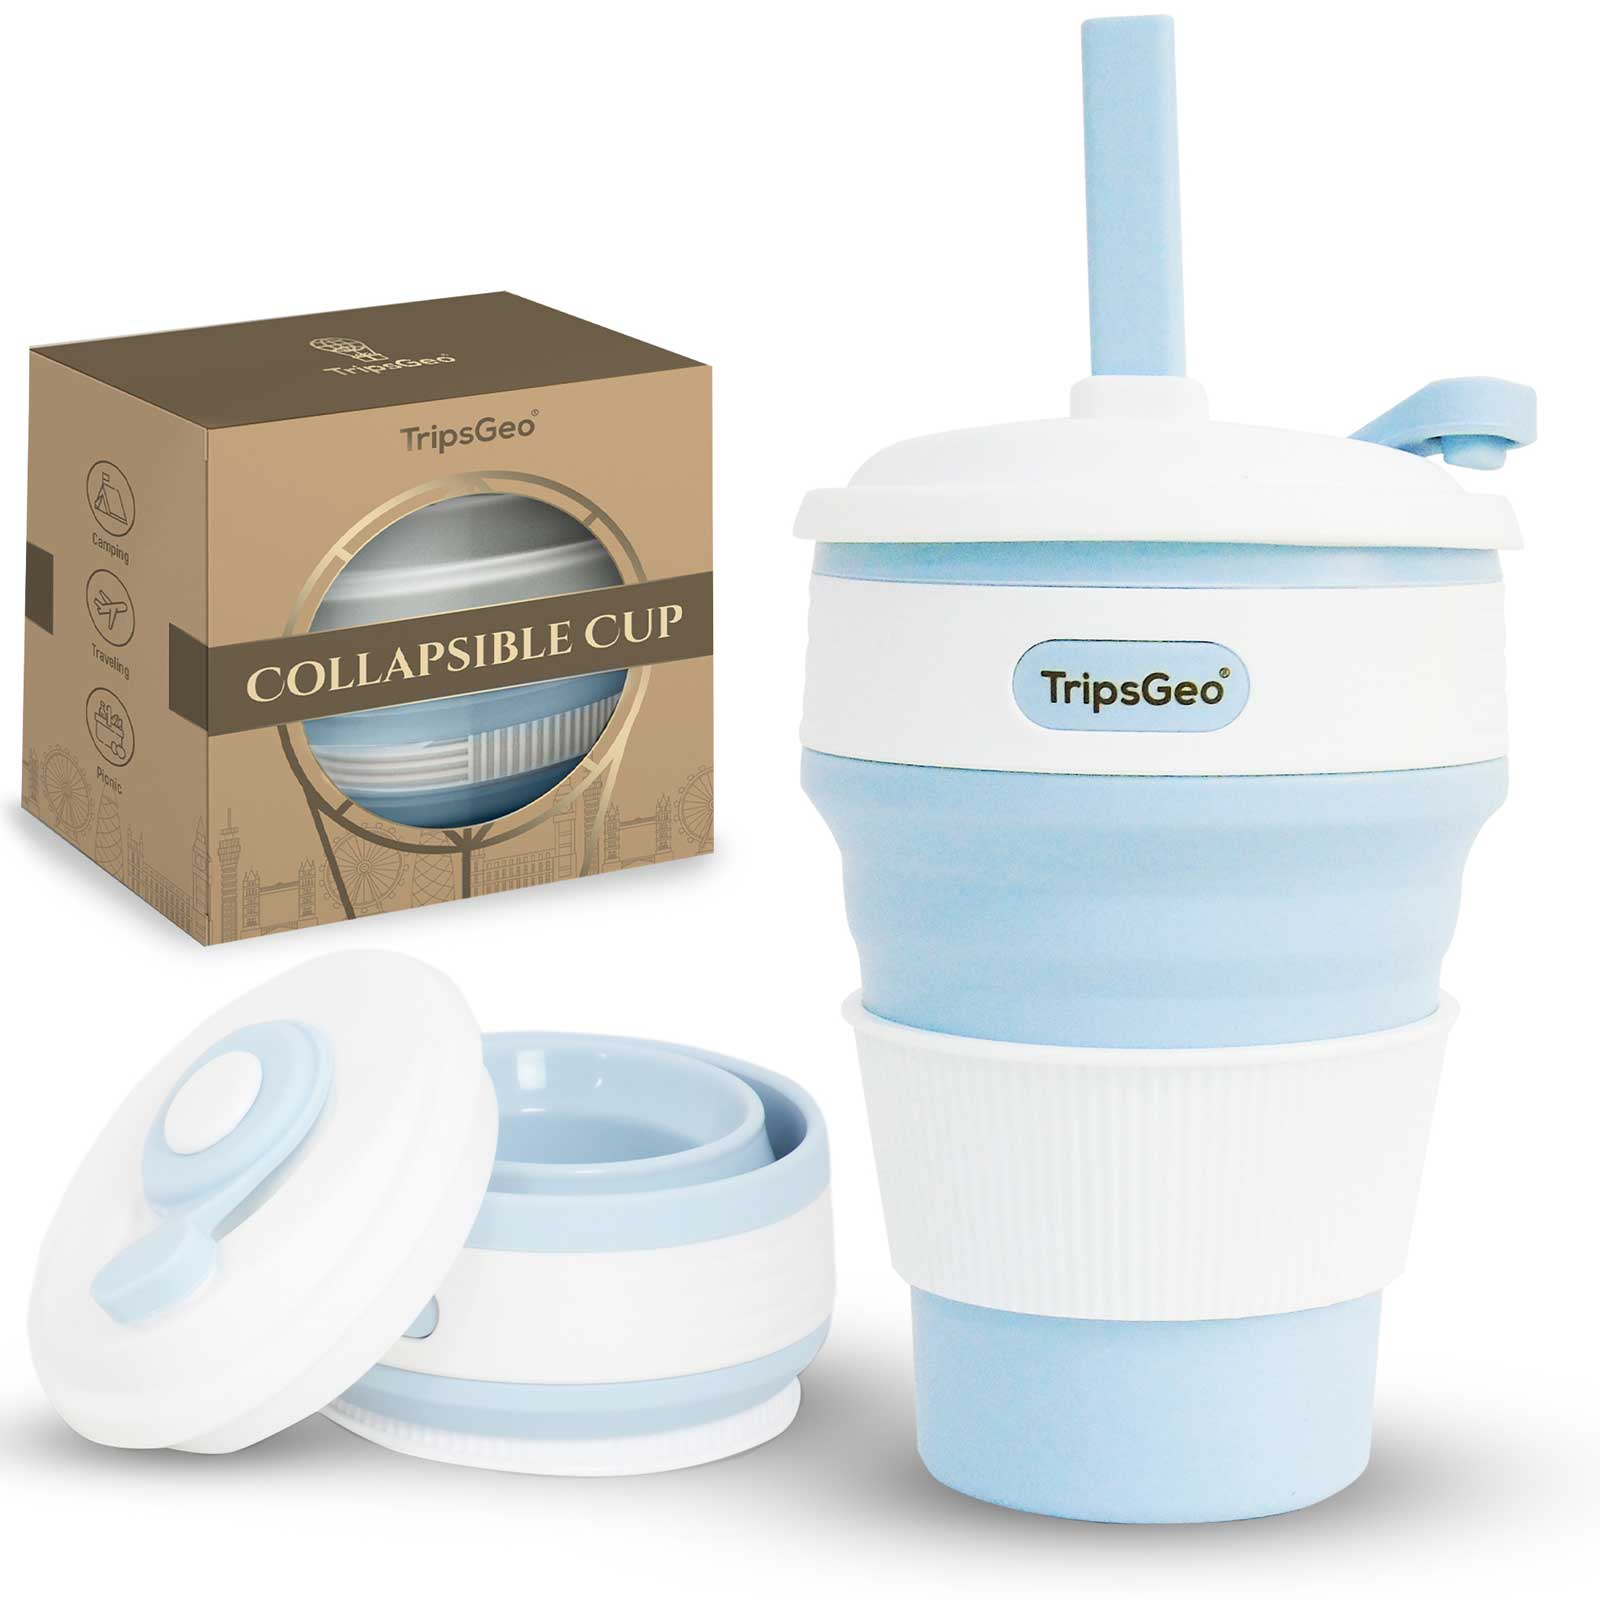 TripsGeo collapsible coffee cup holiday shopping